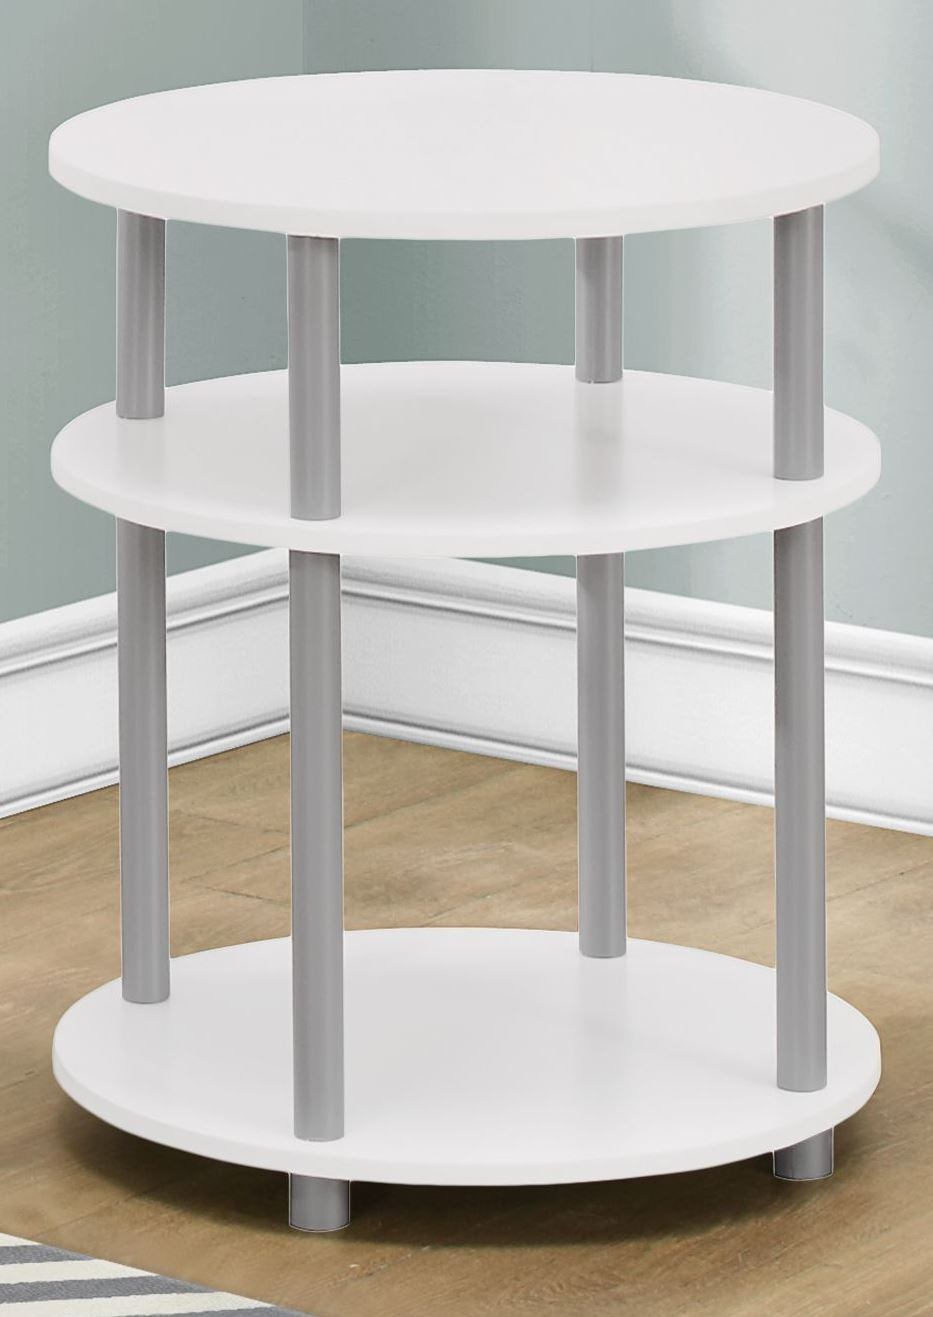 white round accent table small monarch neelan outside lawn chairs patio umbrella weights diy rustic coffee tables full length wall mirror modern pedestal knotty pine desk oval